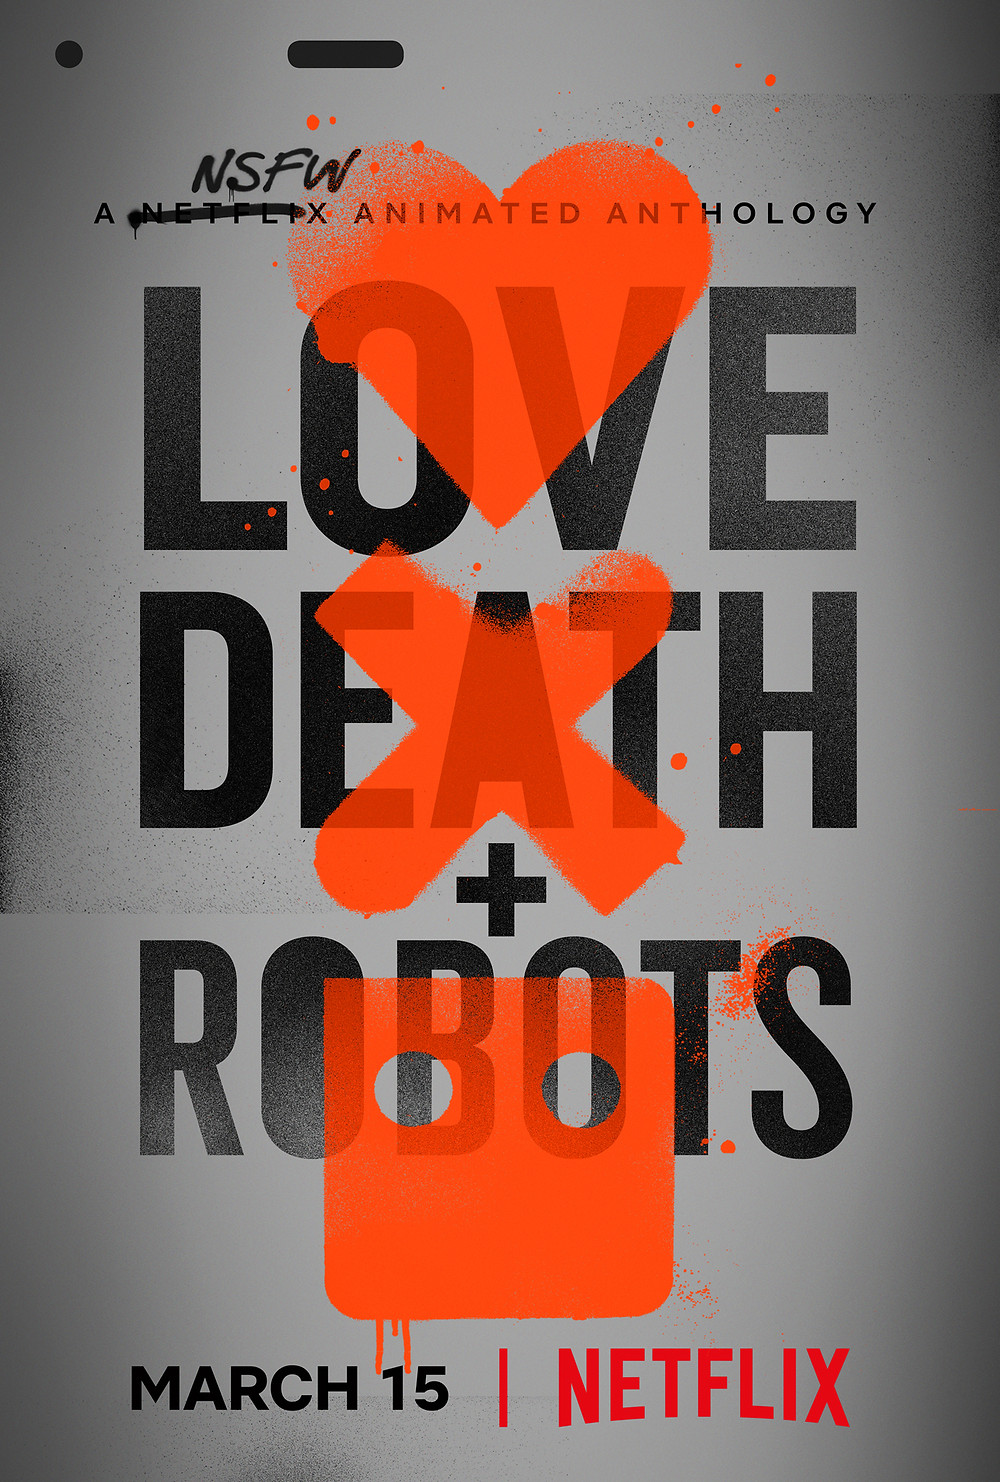 A NSFW animated anthology. In capital words in three lines it's written, LOVE with a heart on it, DEATH with a cross on it, + ROBOTS with a robot face on it.